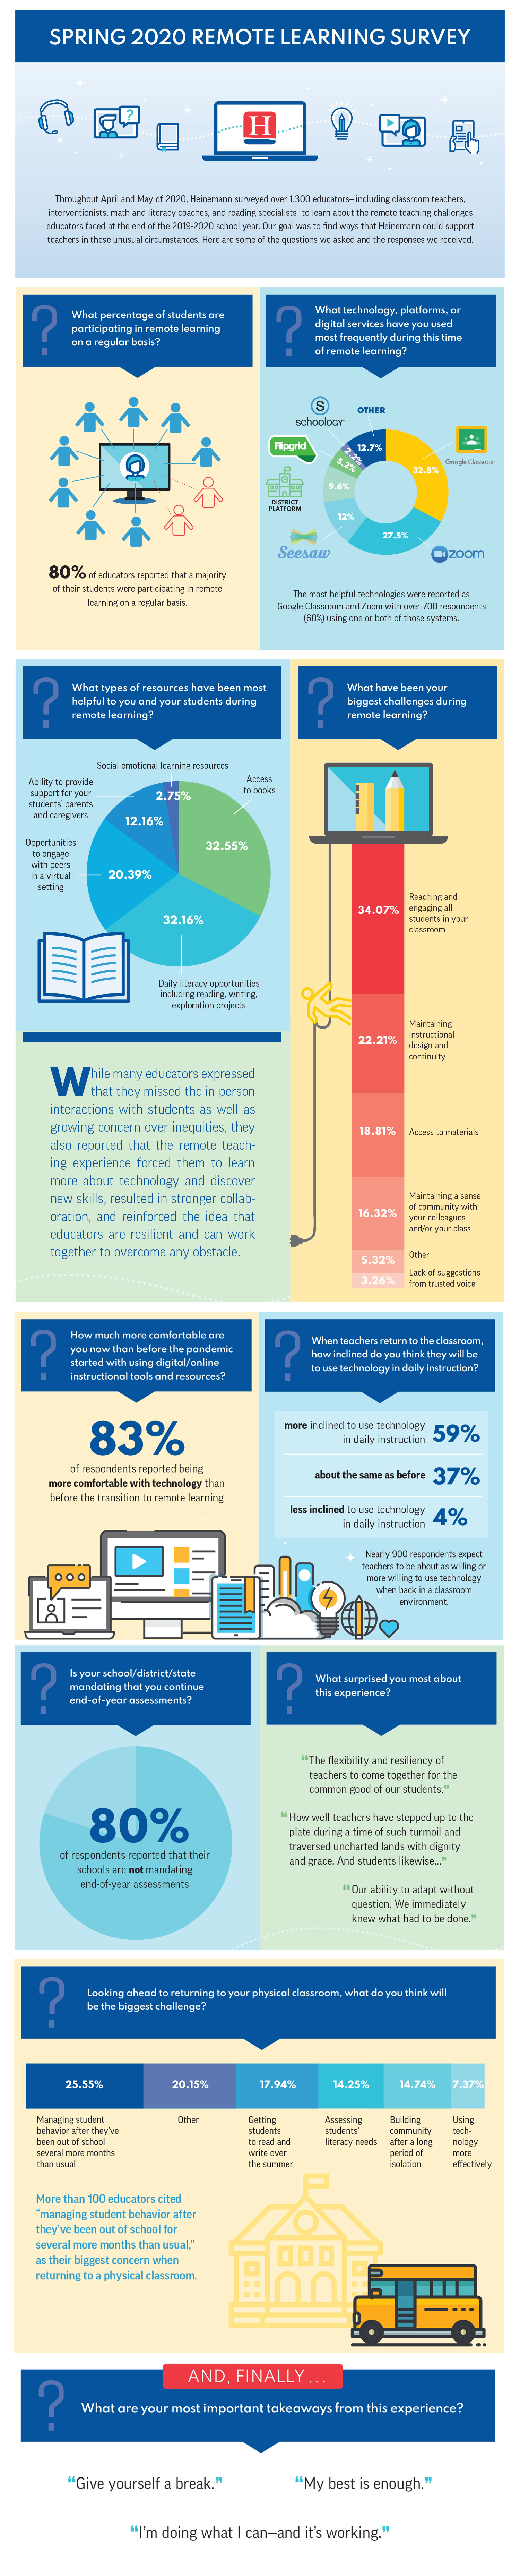 RemoteLearning_SurveyInfographic_tall